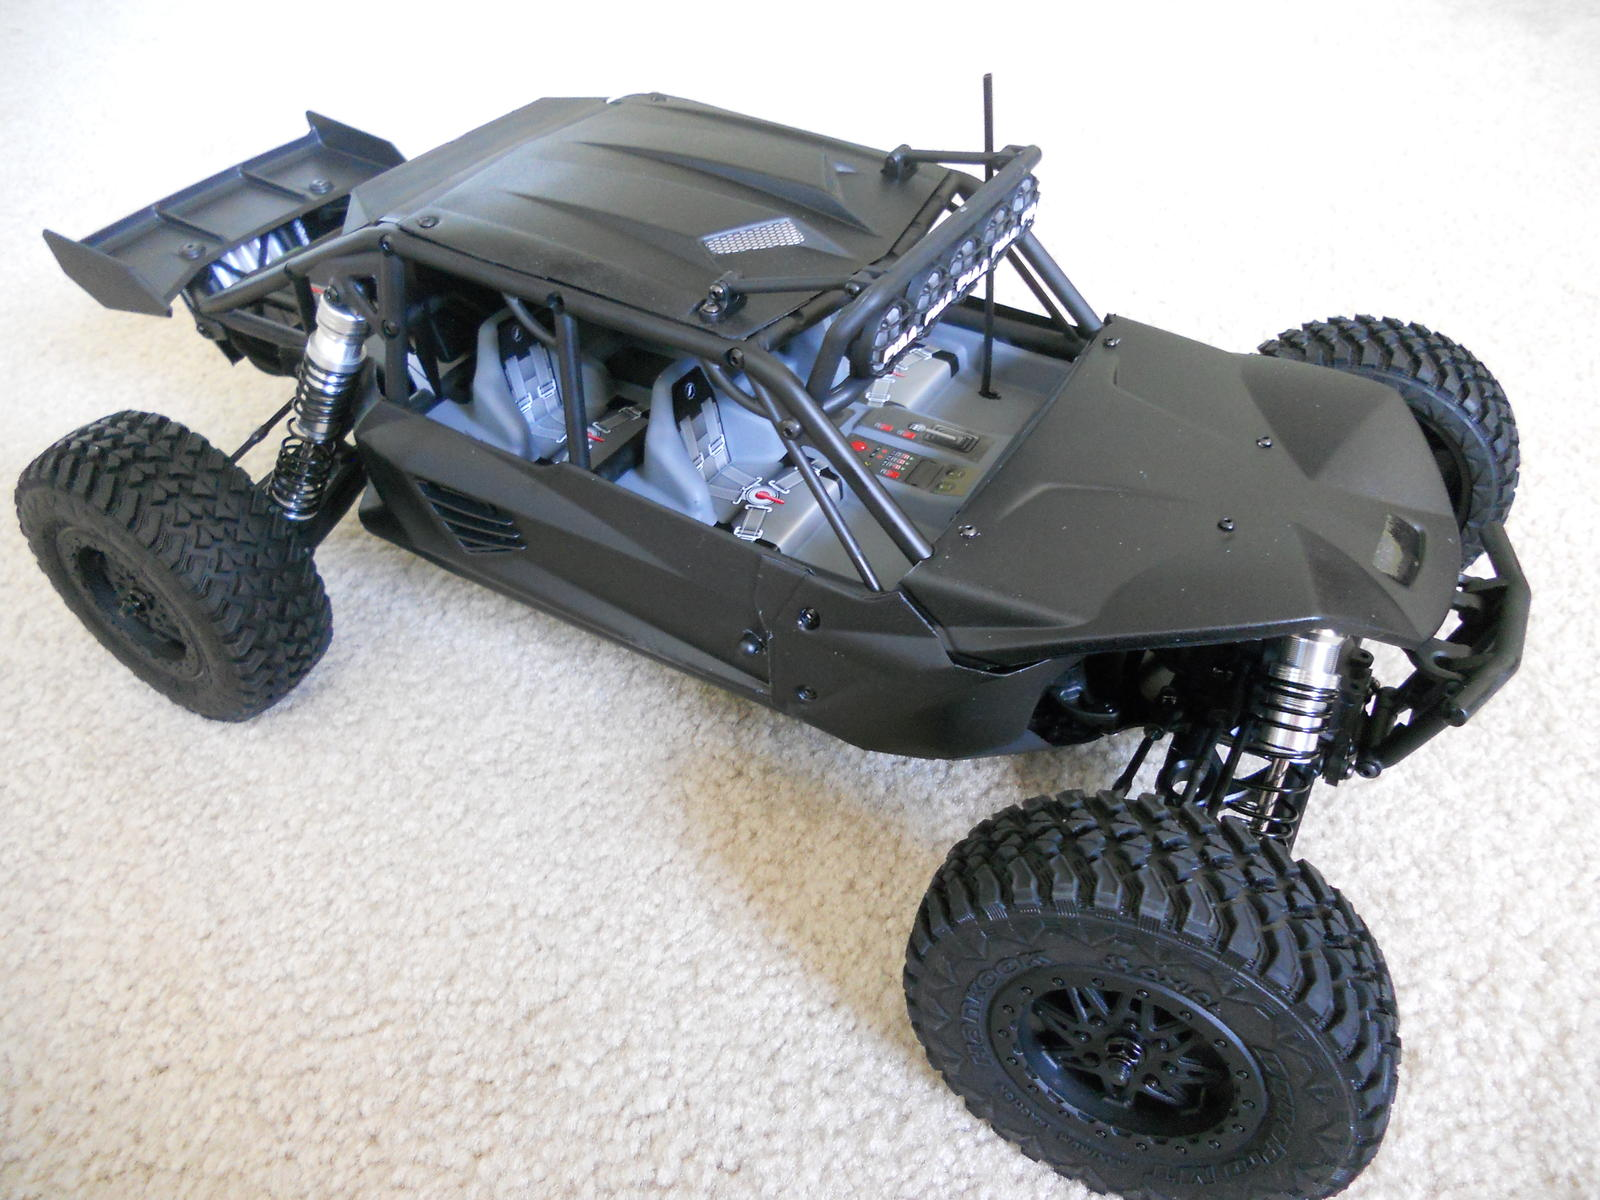 Axial Exo Tire : Axial exo terra buggy picture archive page rcshortcourse